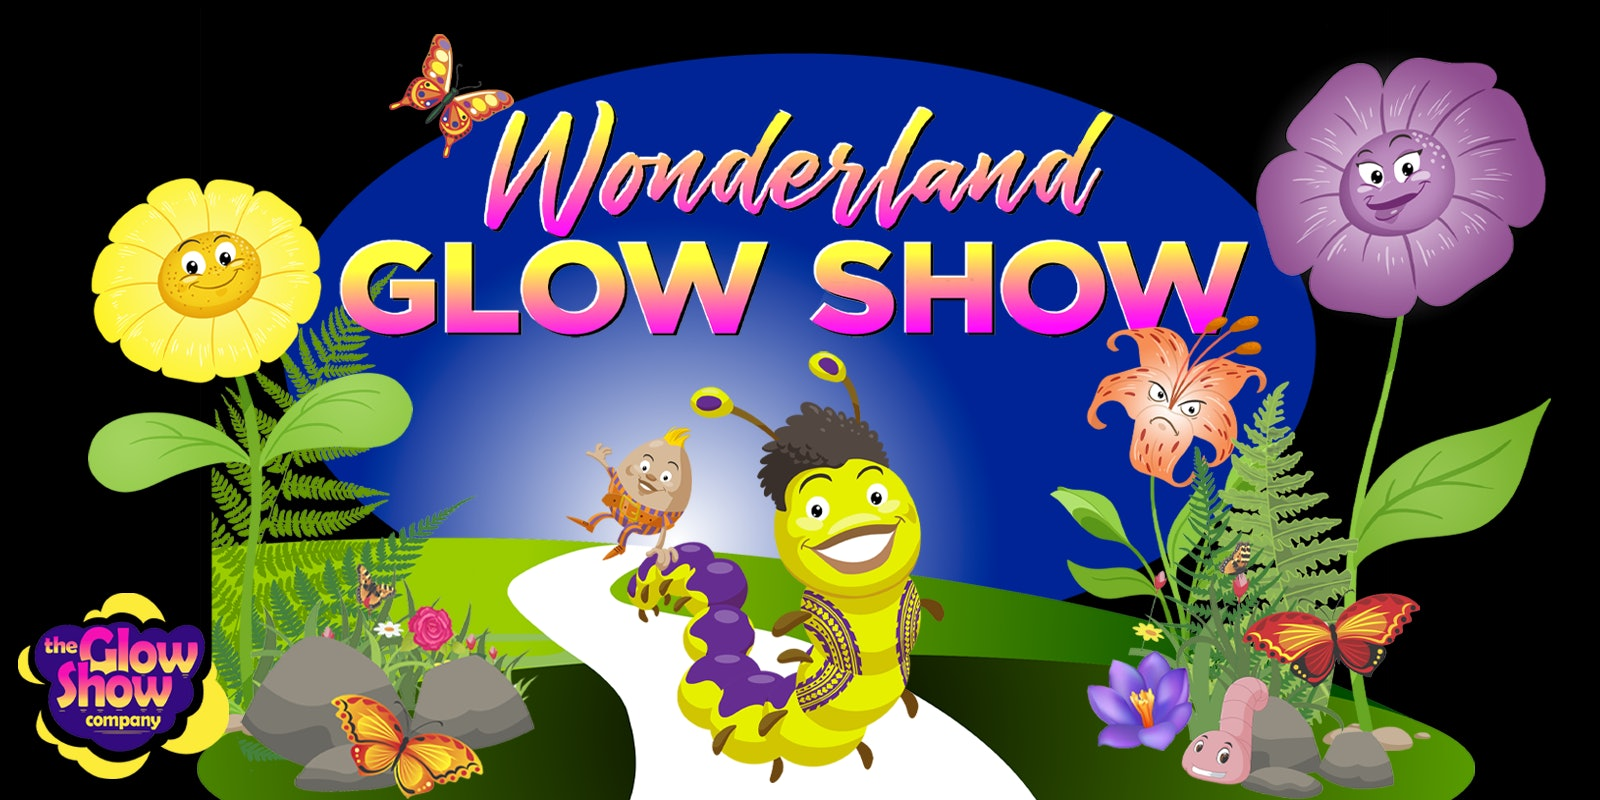 Wonderland Glow Show! (Ages 6 and up)